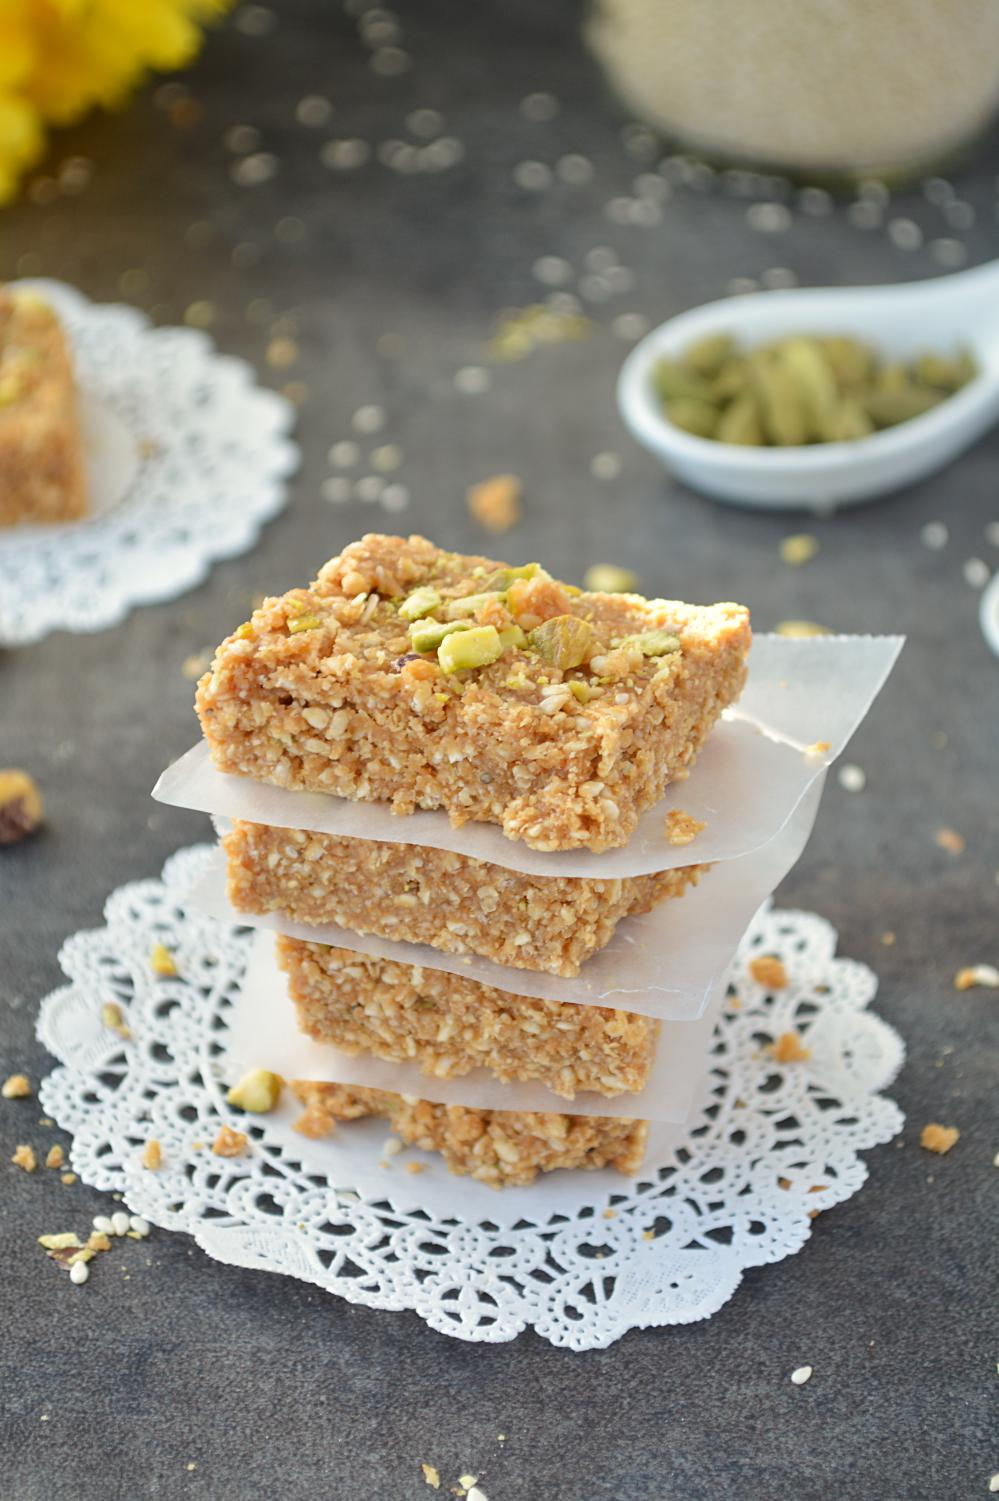 Til and Gur Patti or til chikki recipe